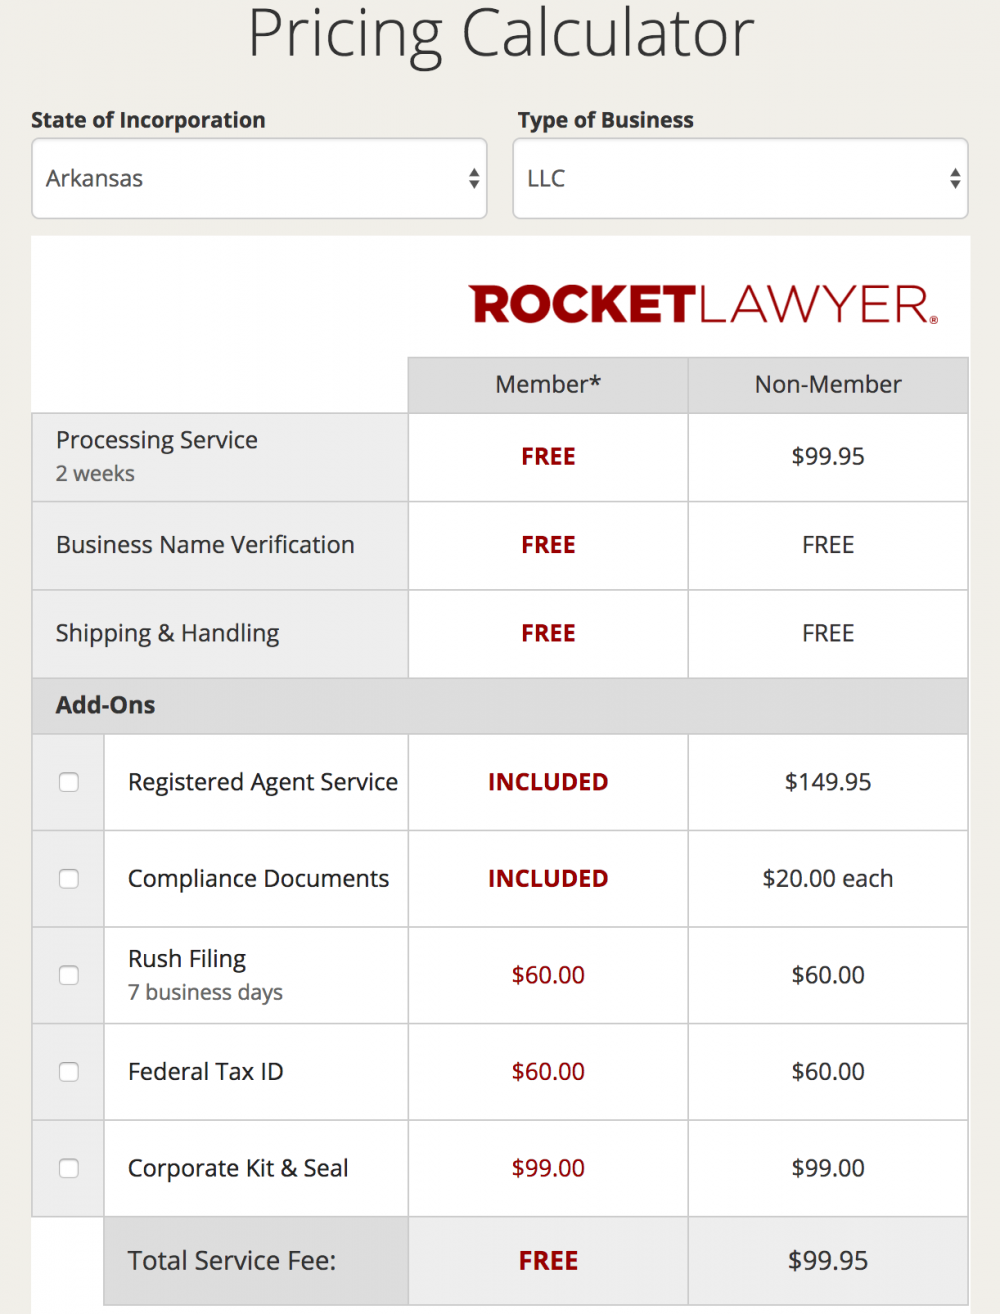 Rocketlawyer Pricing Calculator